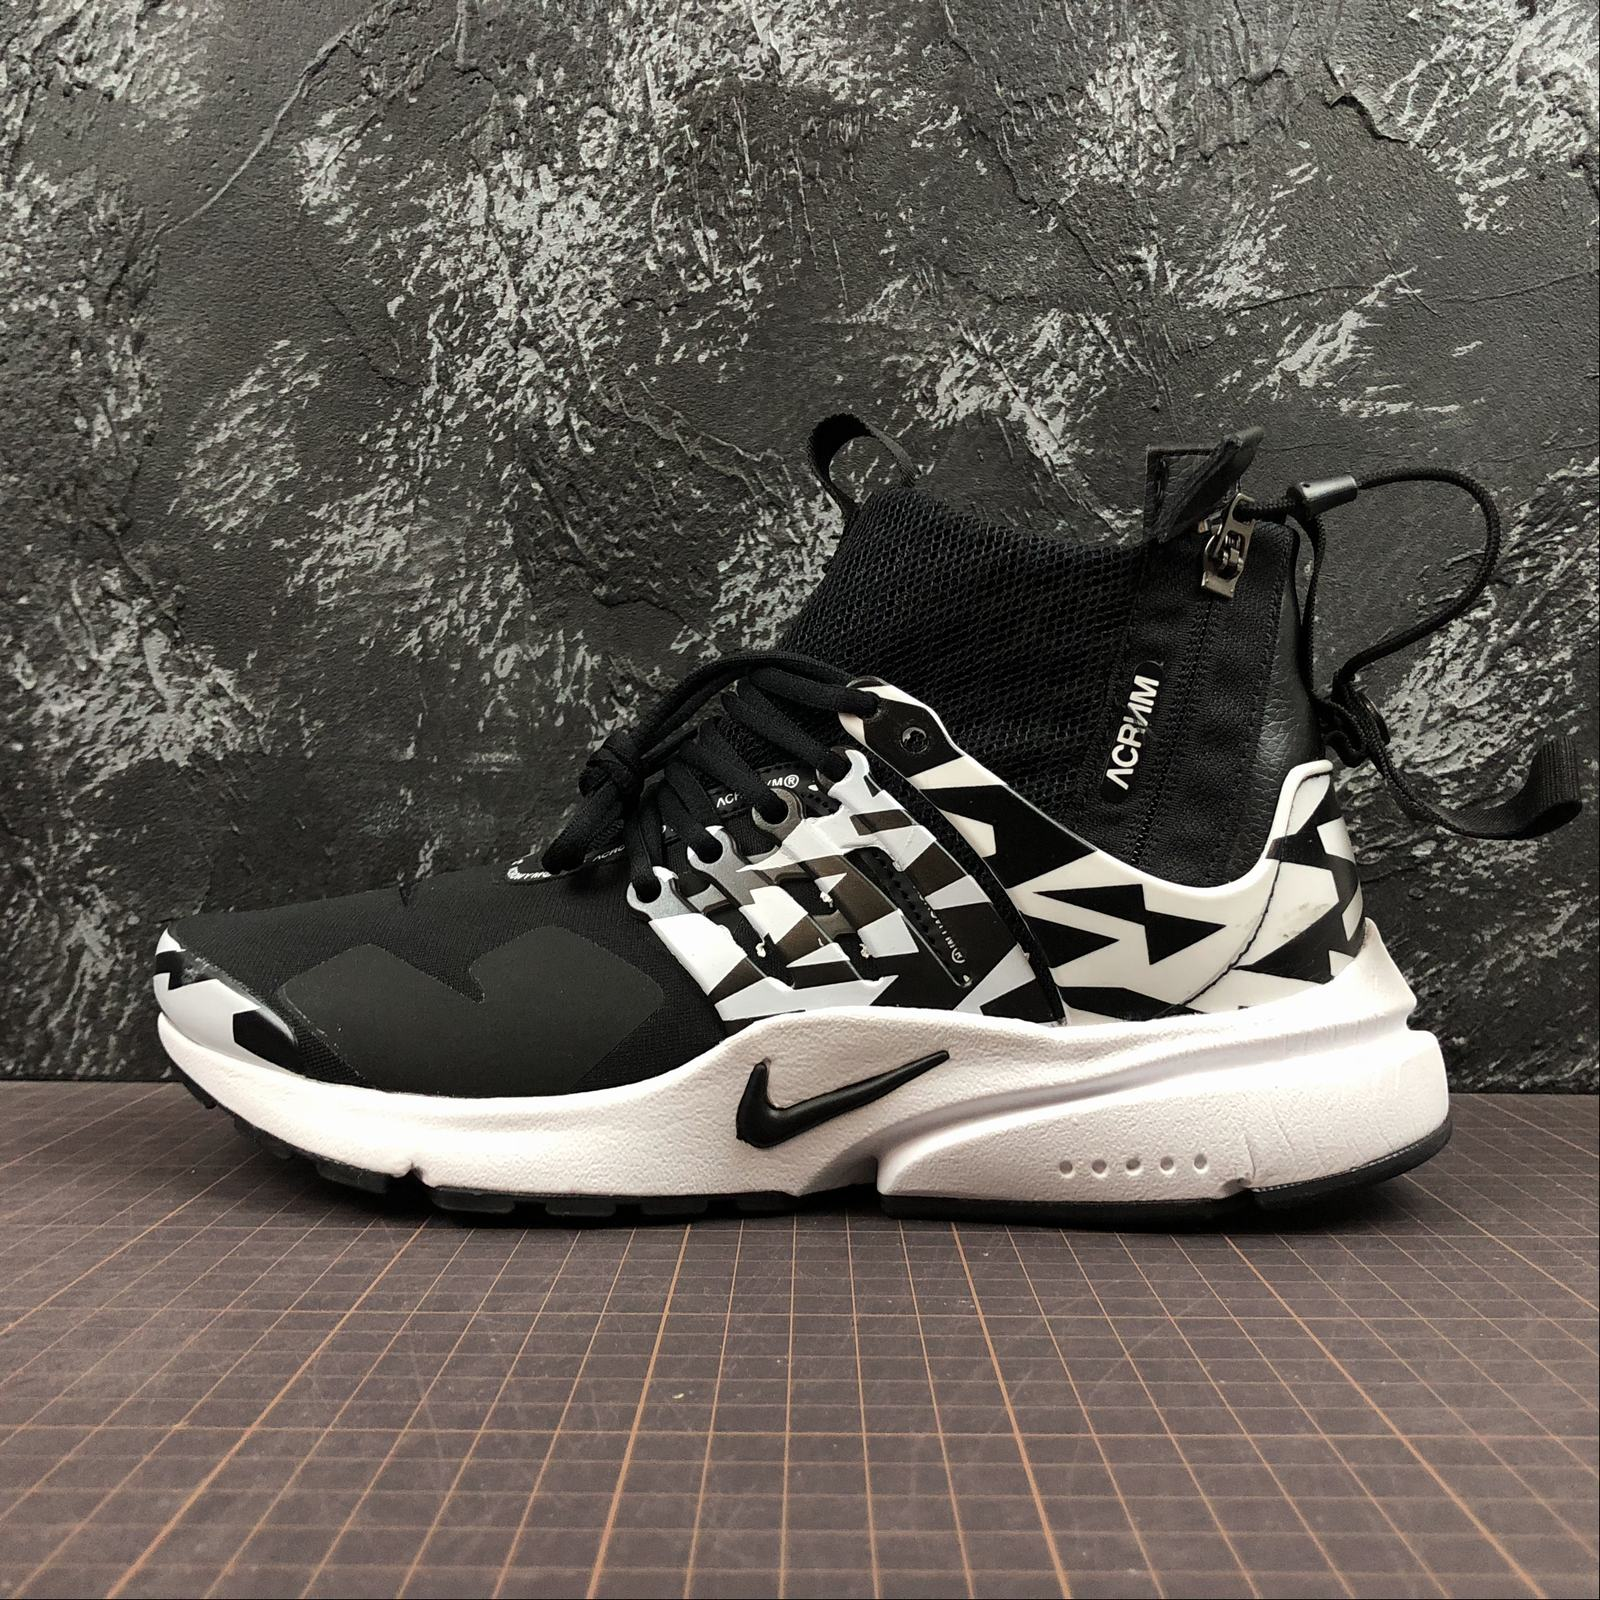 Мужские кроссовки Nike Air Presto Mid Acronym Men Black,White,Black